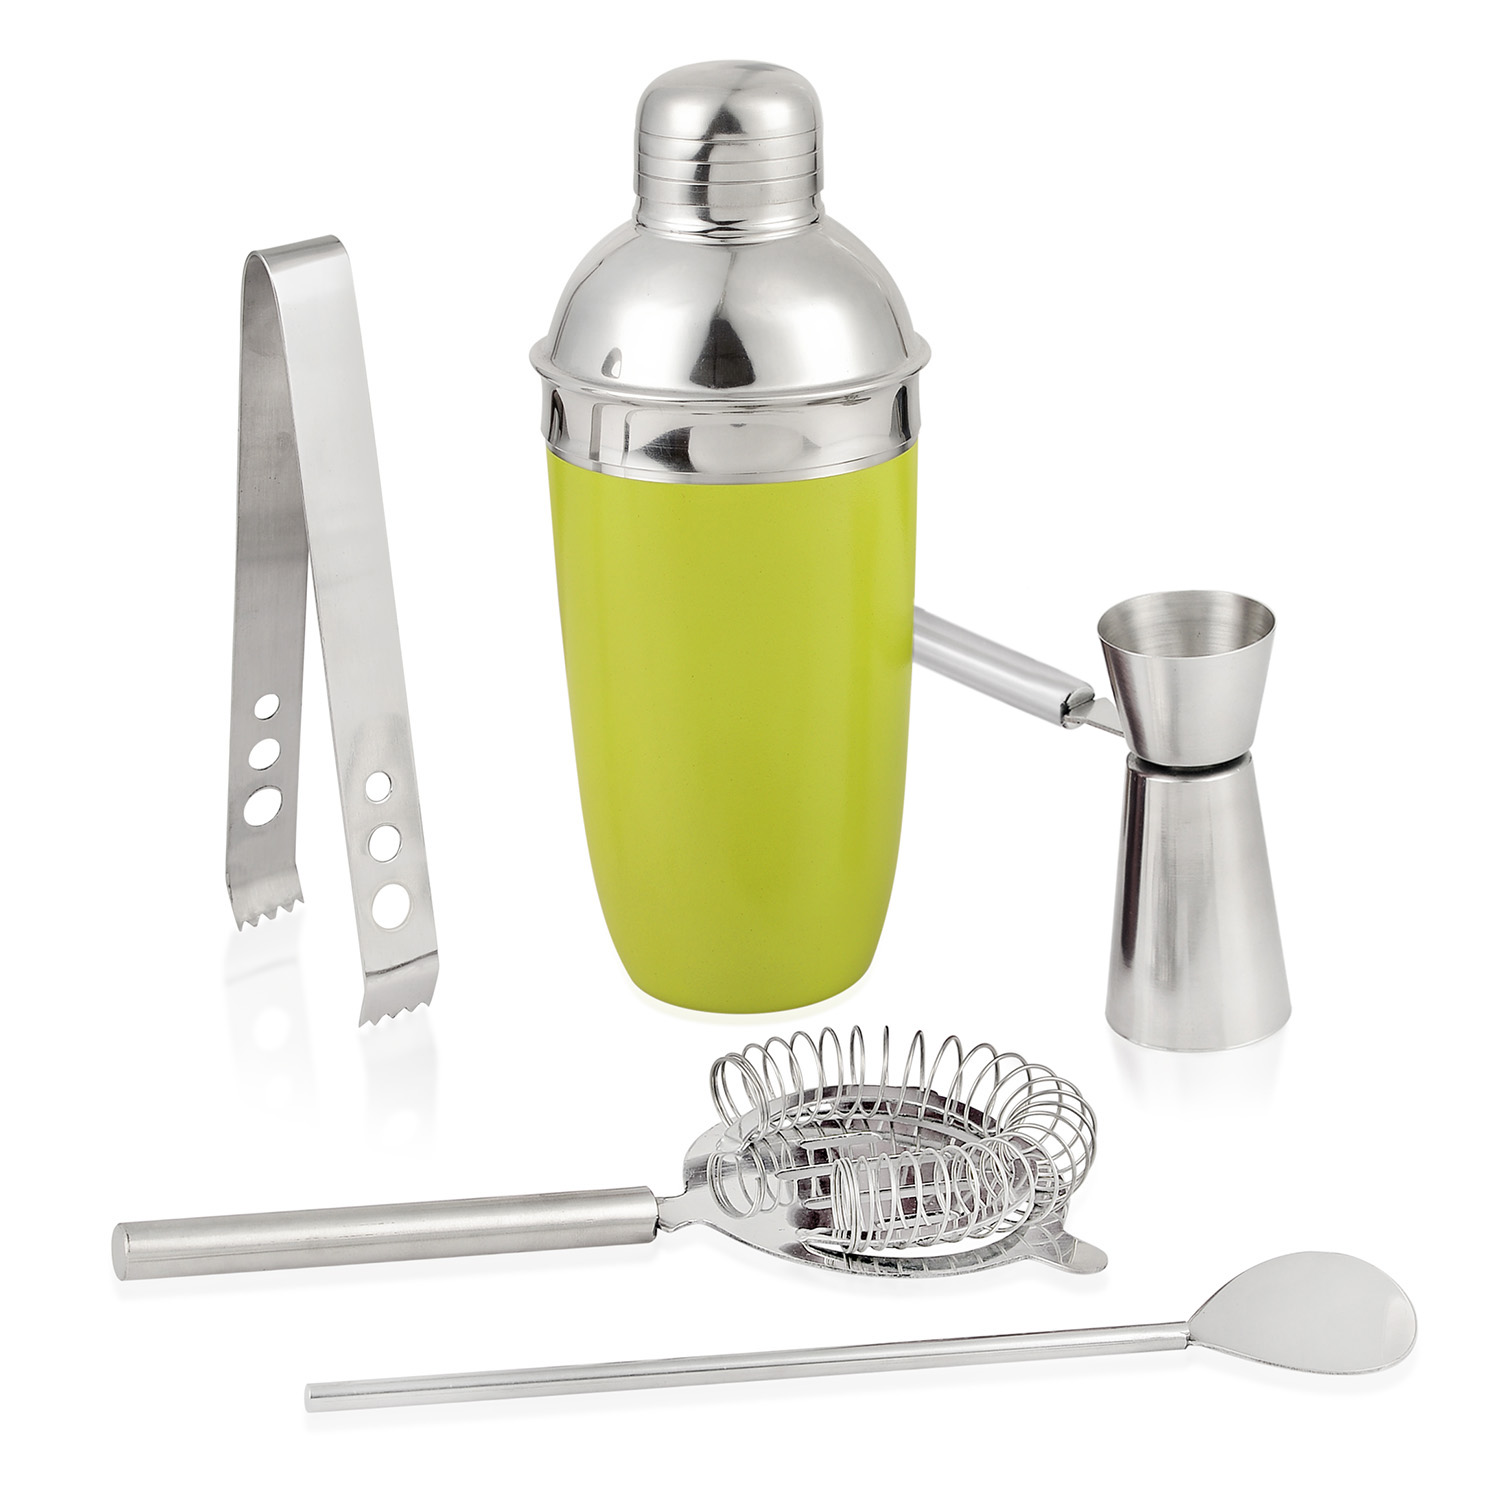 Blue Stainless Steel Bar Set Cocktail Shaker Strainer Top Jigger Bar Spoon Ice Tongs